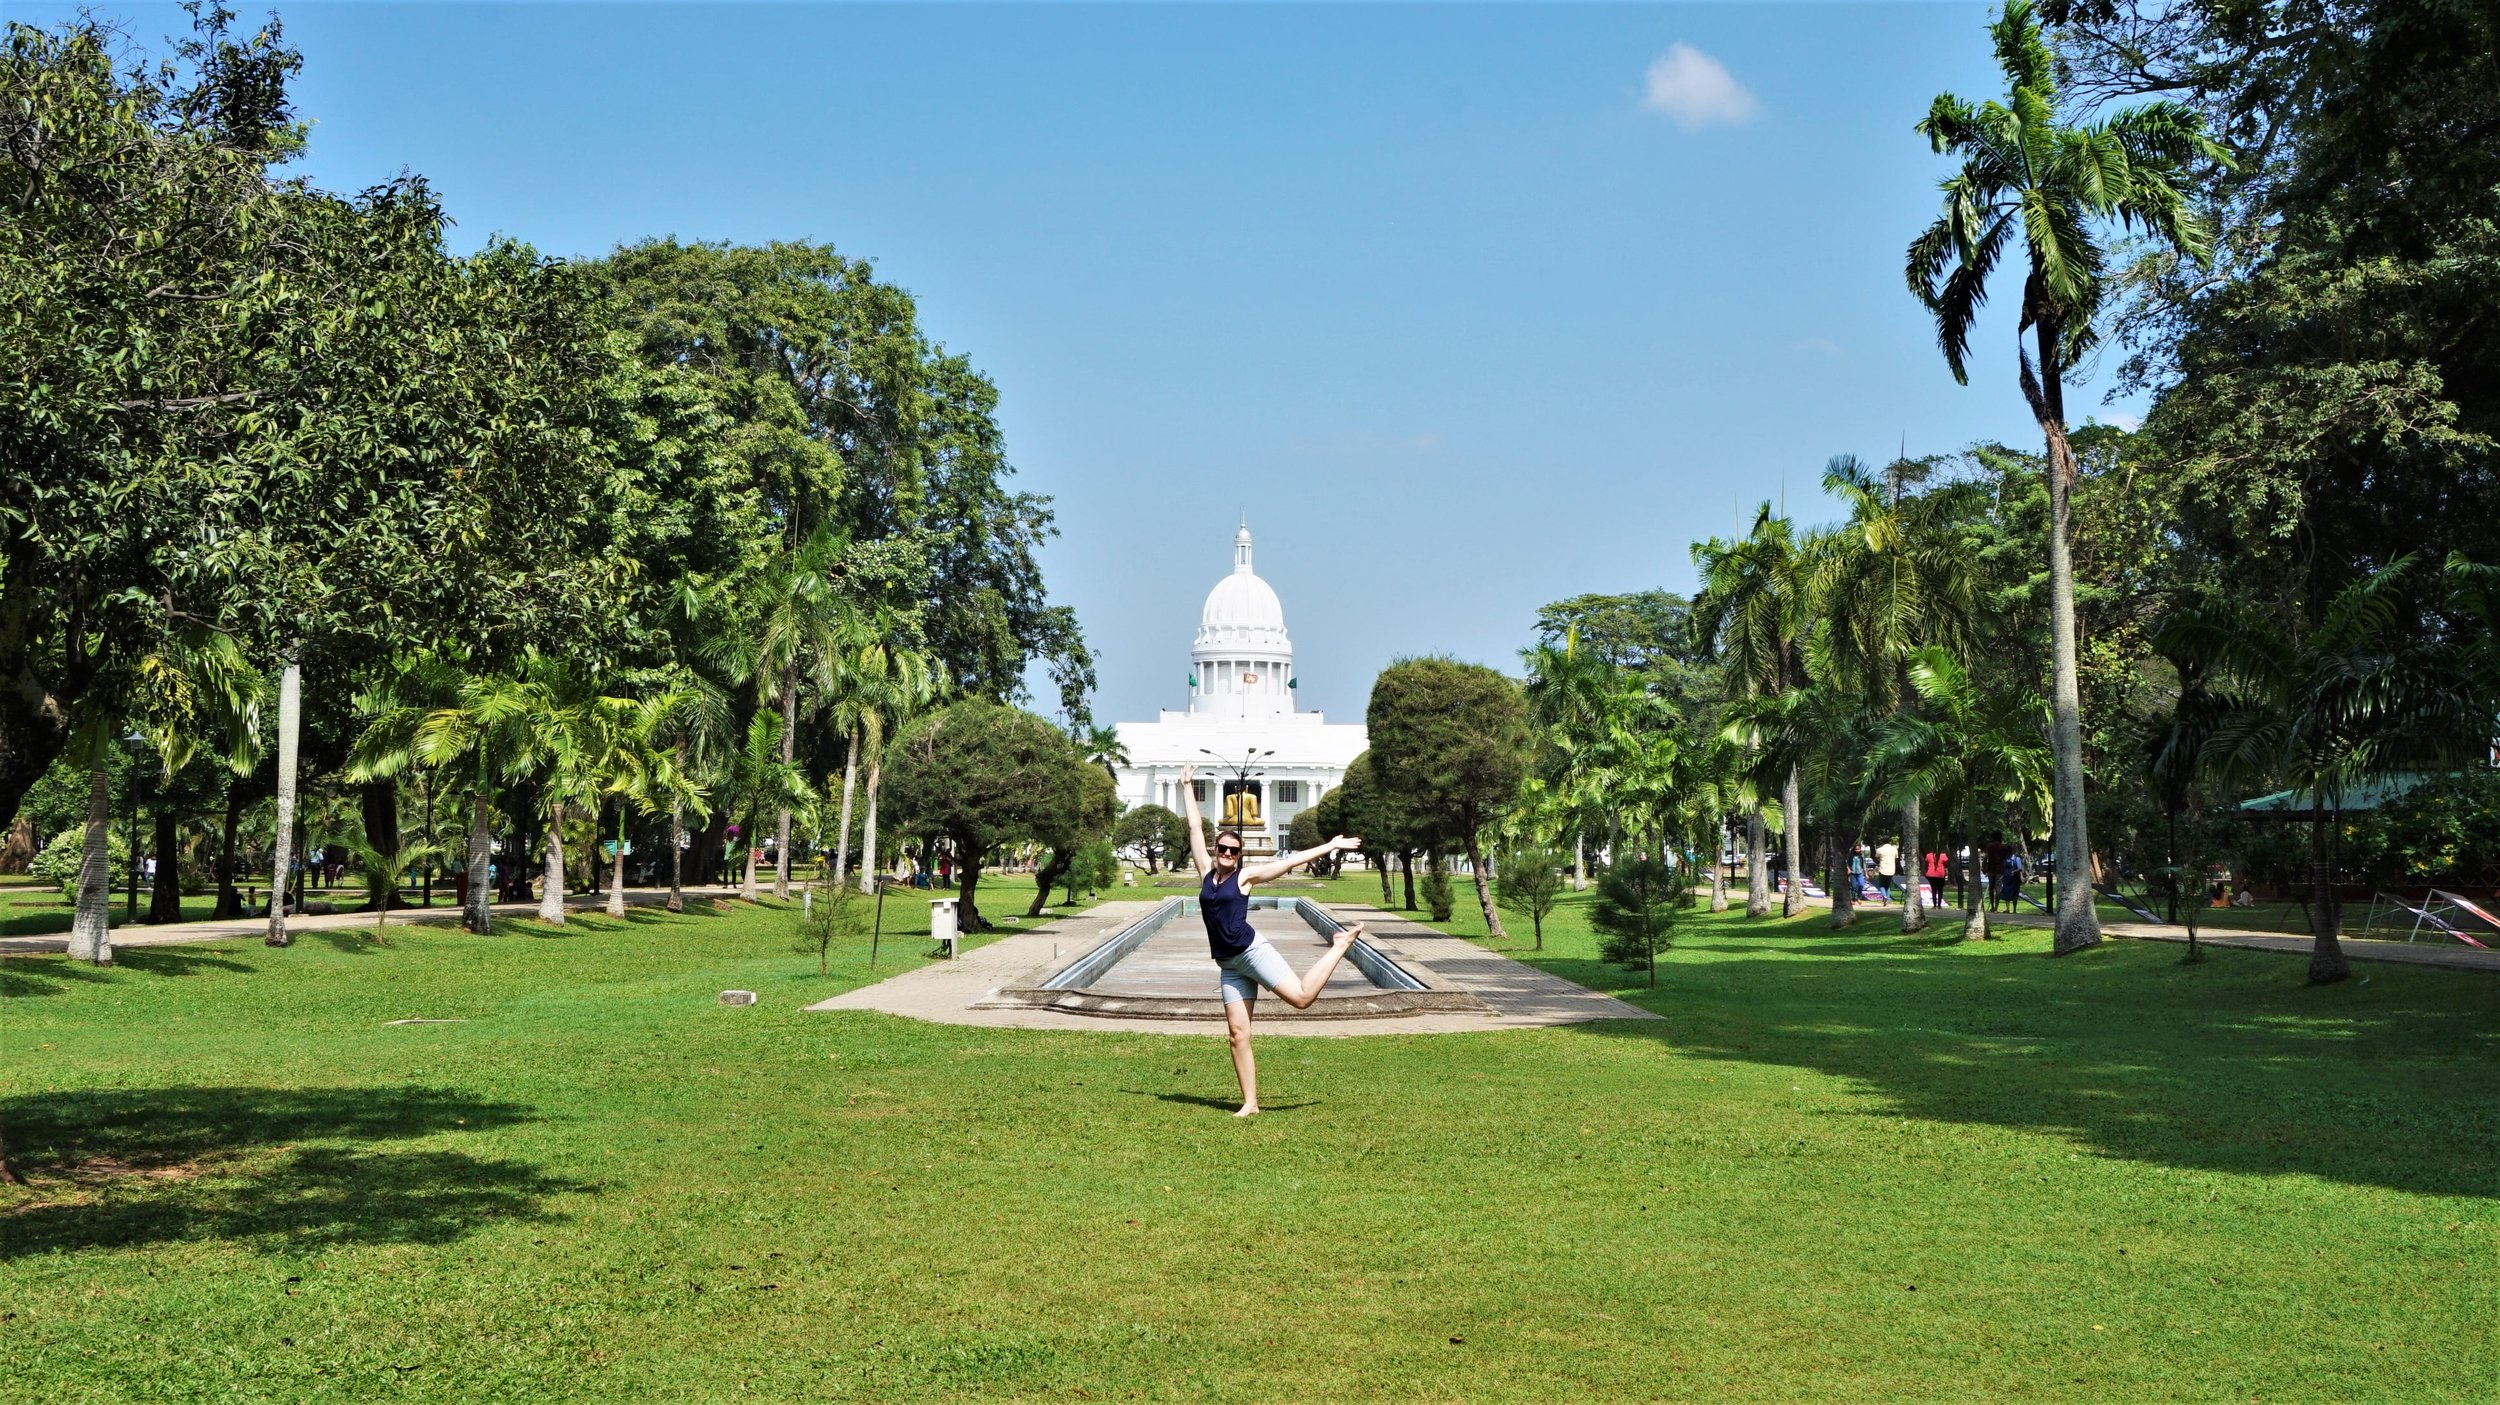 colombo city is one of the best places to visit in sri lanka